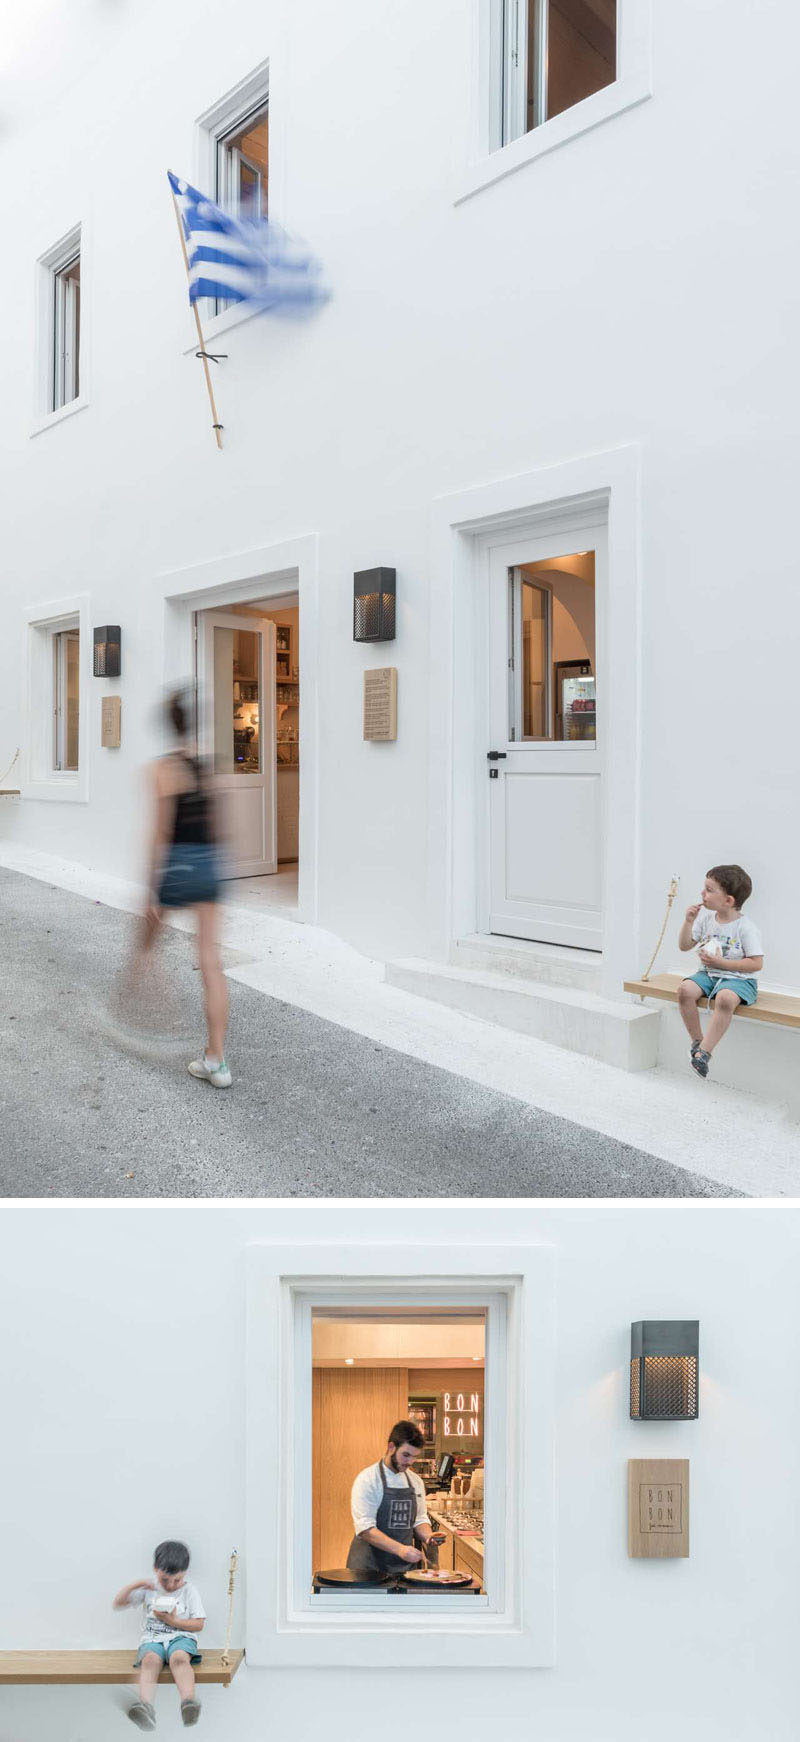 Outside this modern cafe, wood benches have been attached to the walls to provide a place to sit and eat. #ModernCafe #CafeDesign #CafeExterior #Greece